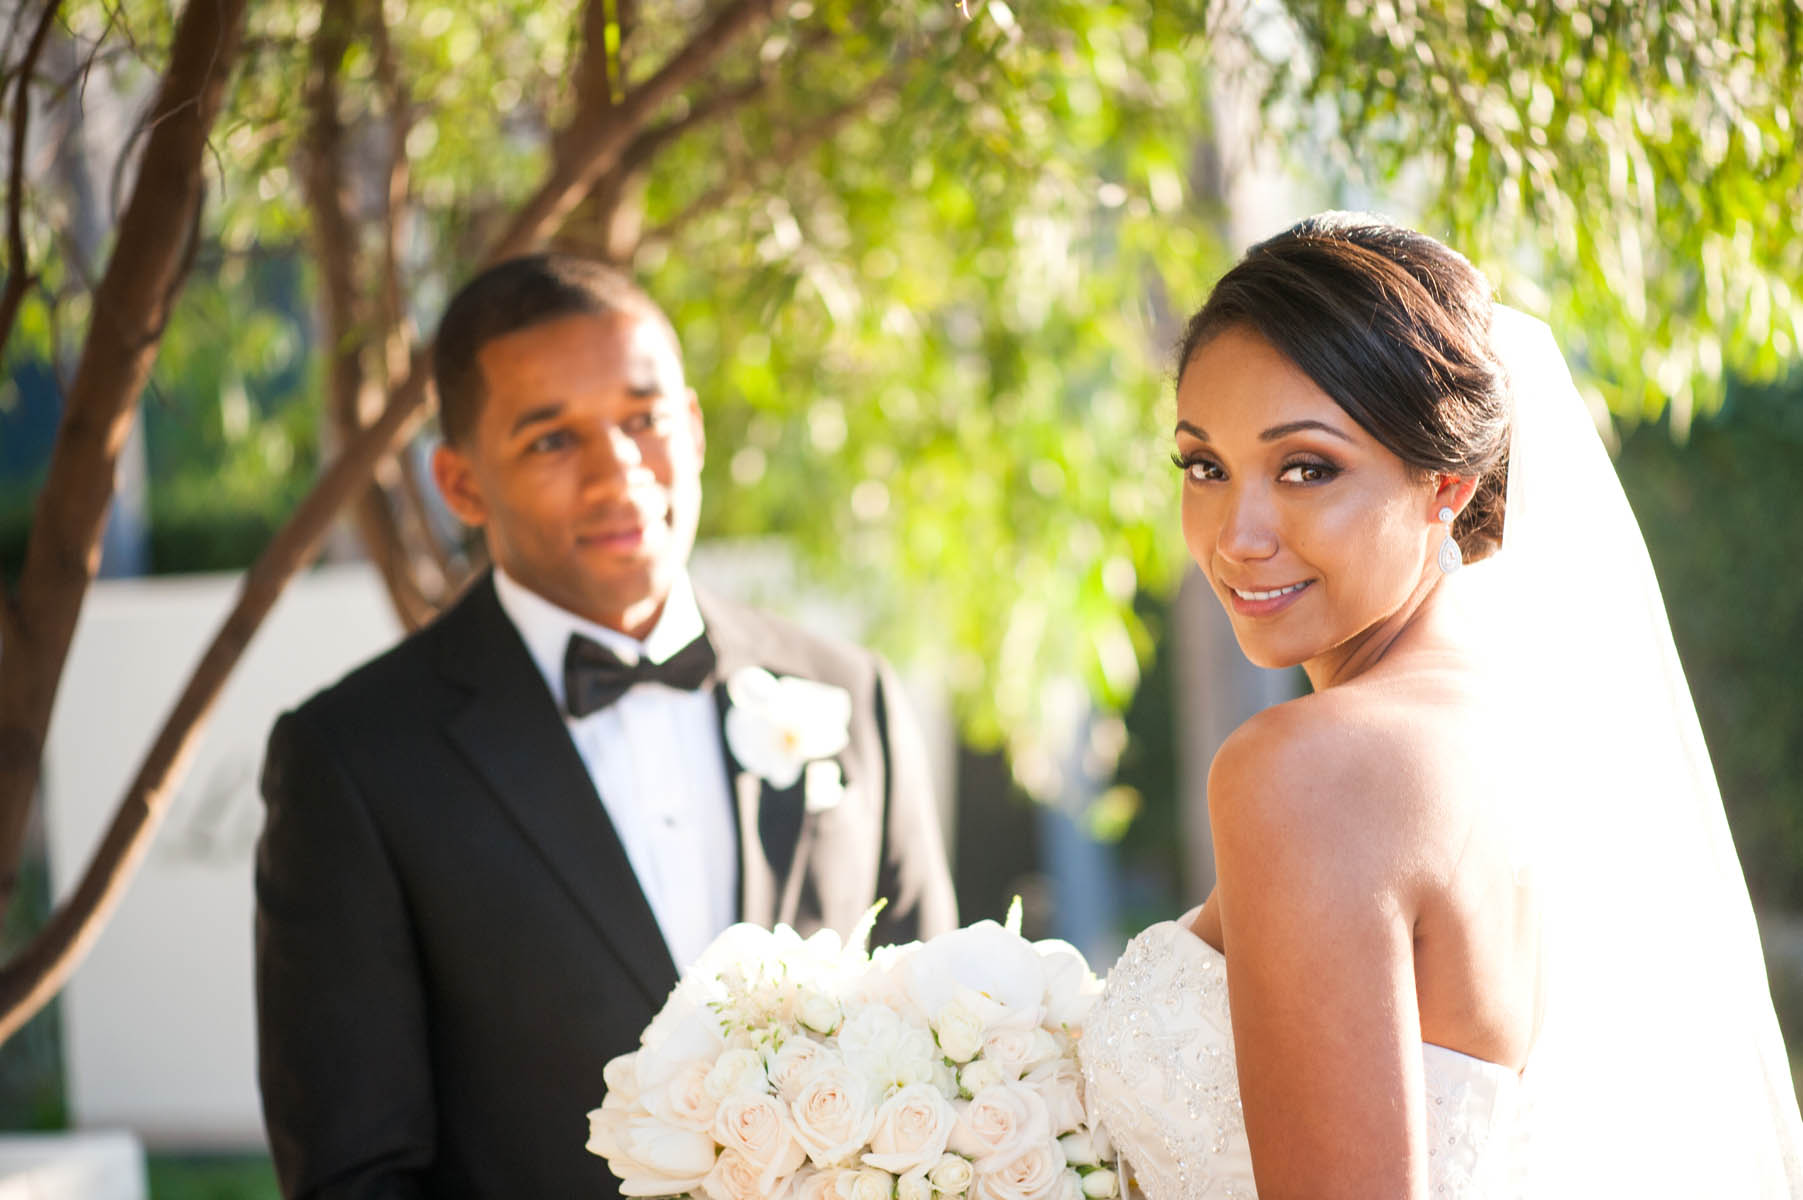 He can\'t keep his eyes off his gorgeous new bride!